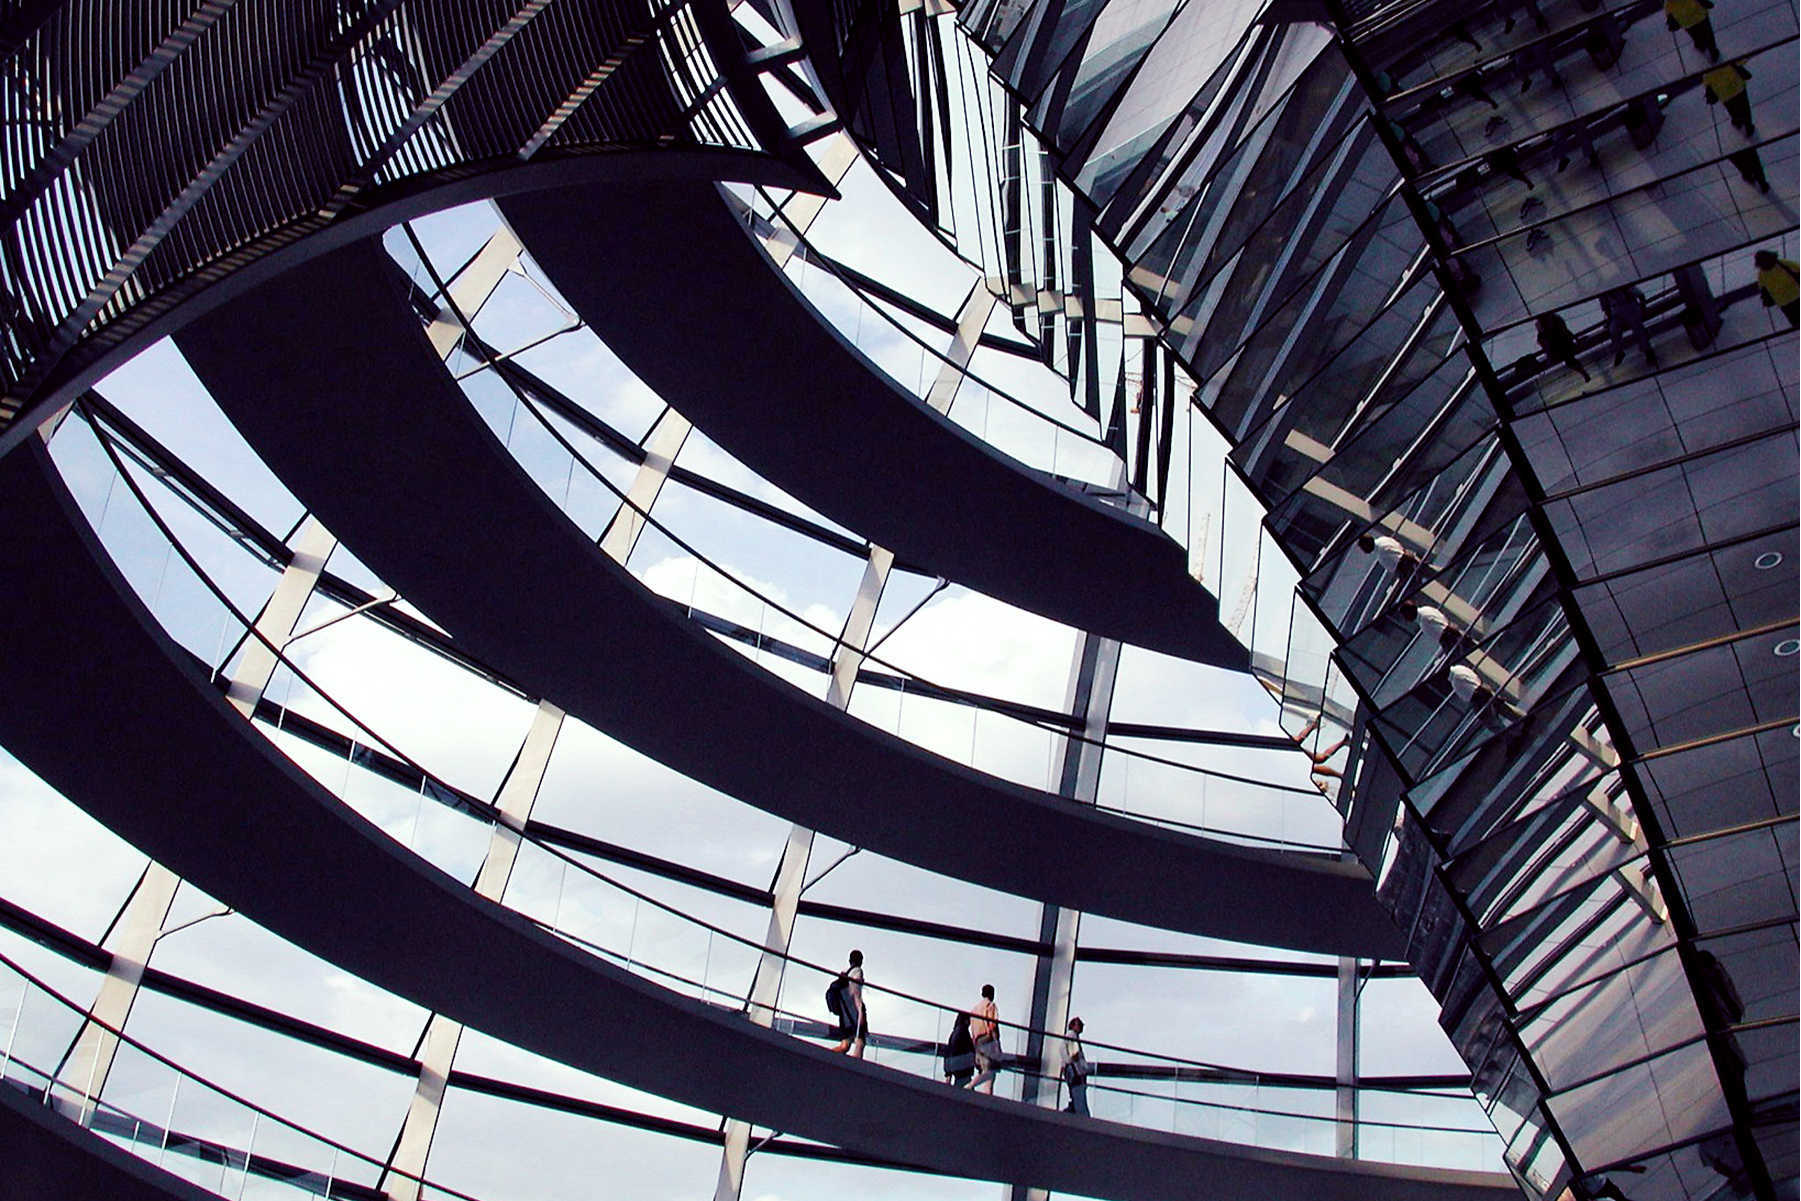 Reighstag Dome Interior, Berlin, Germany